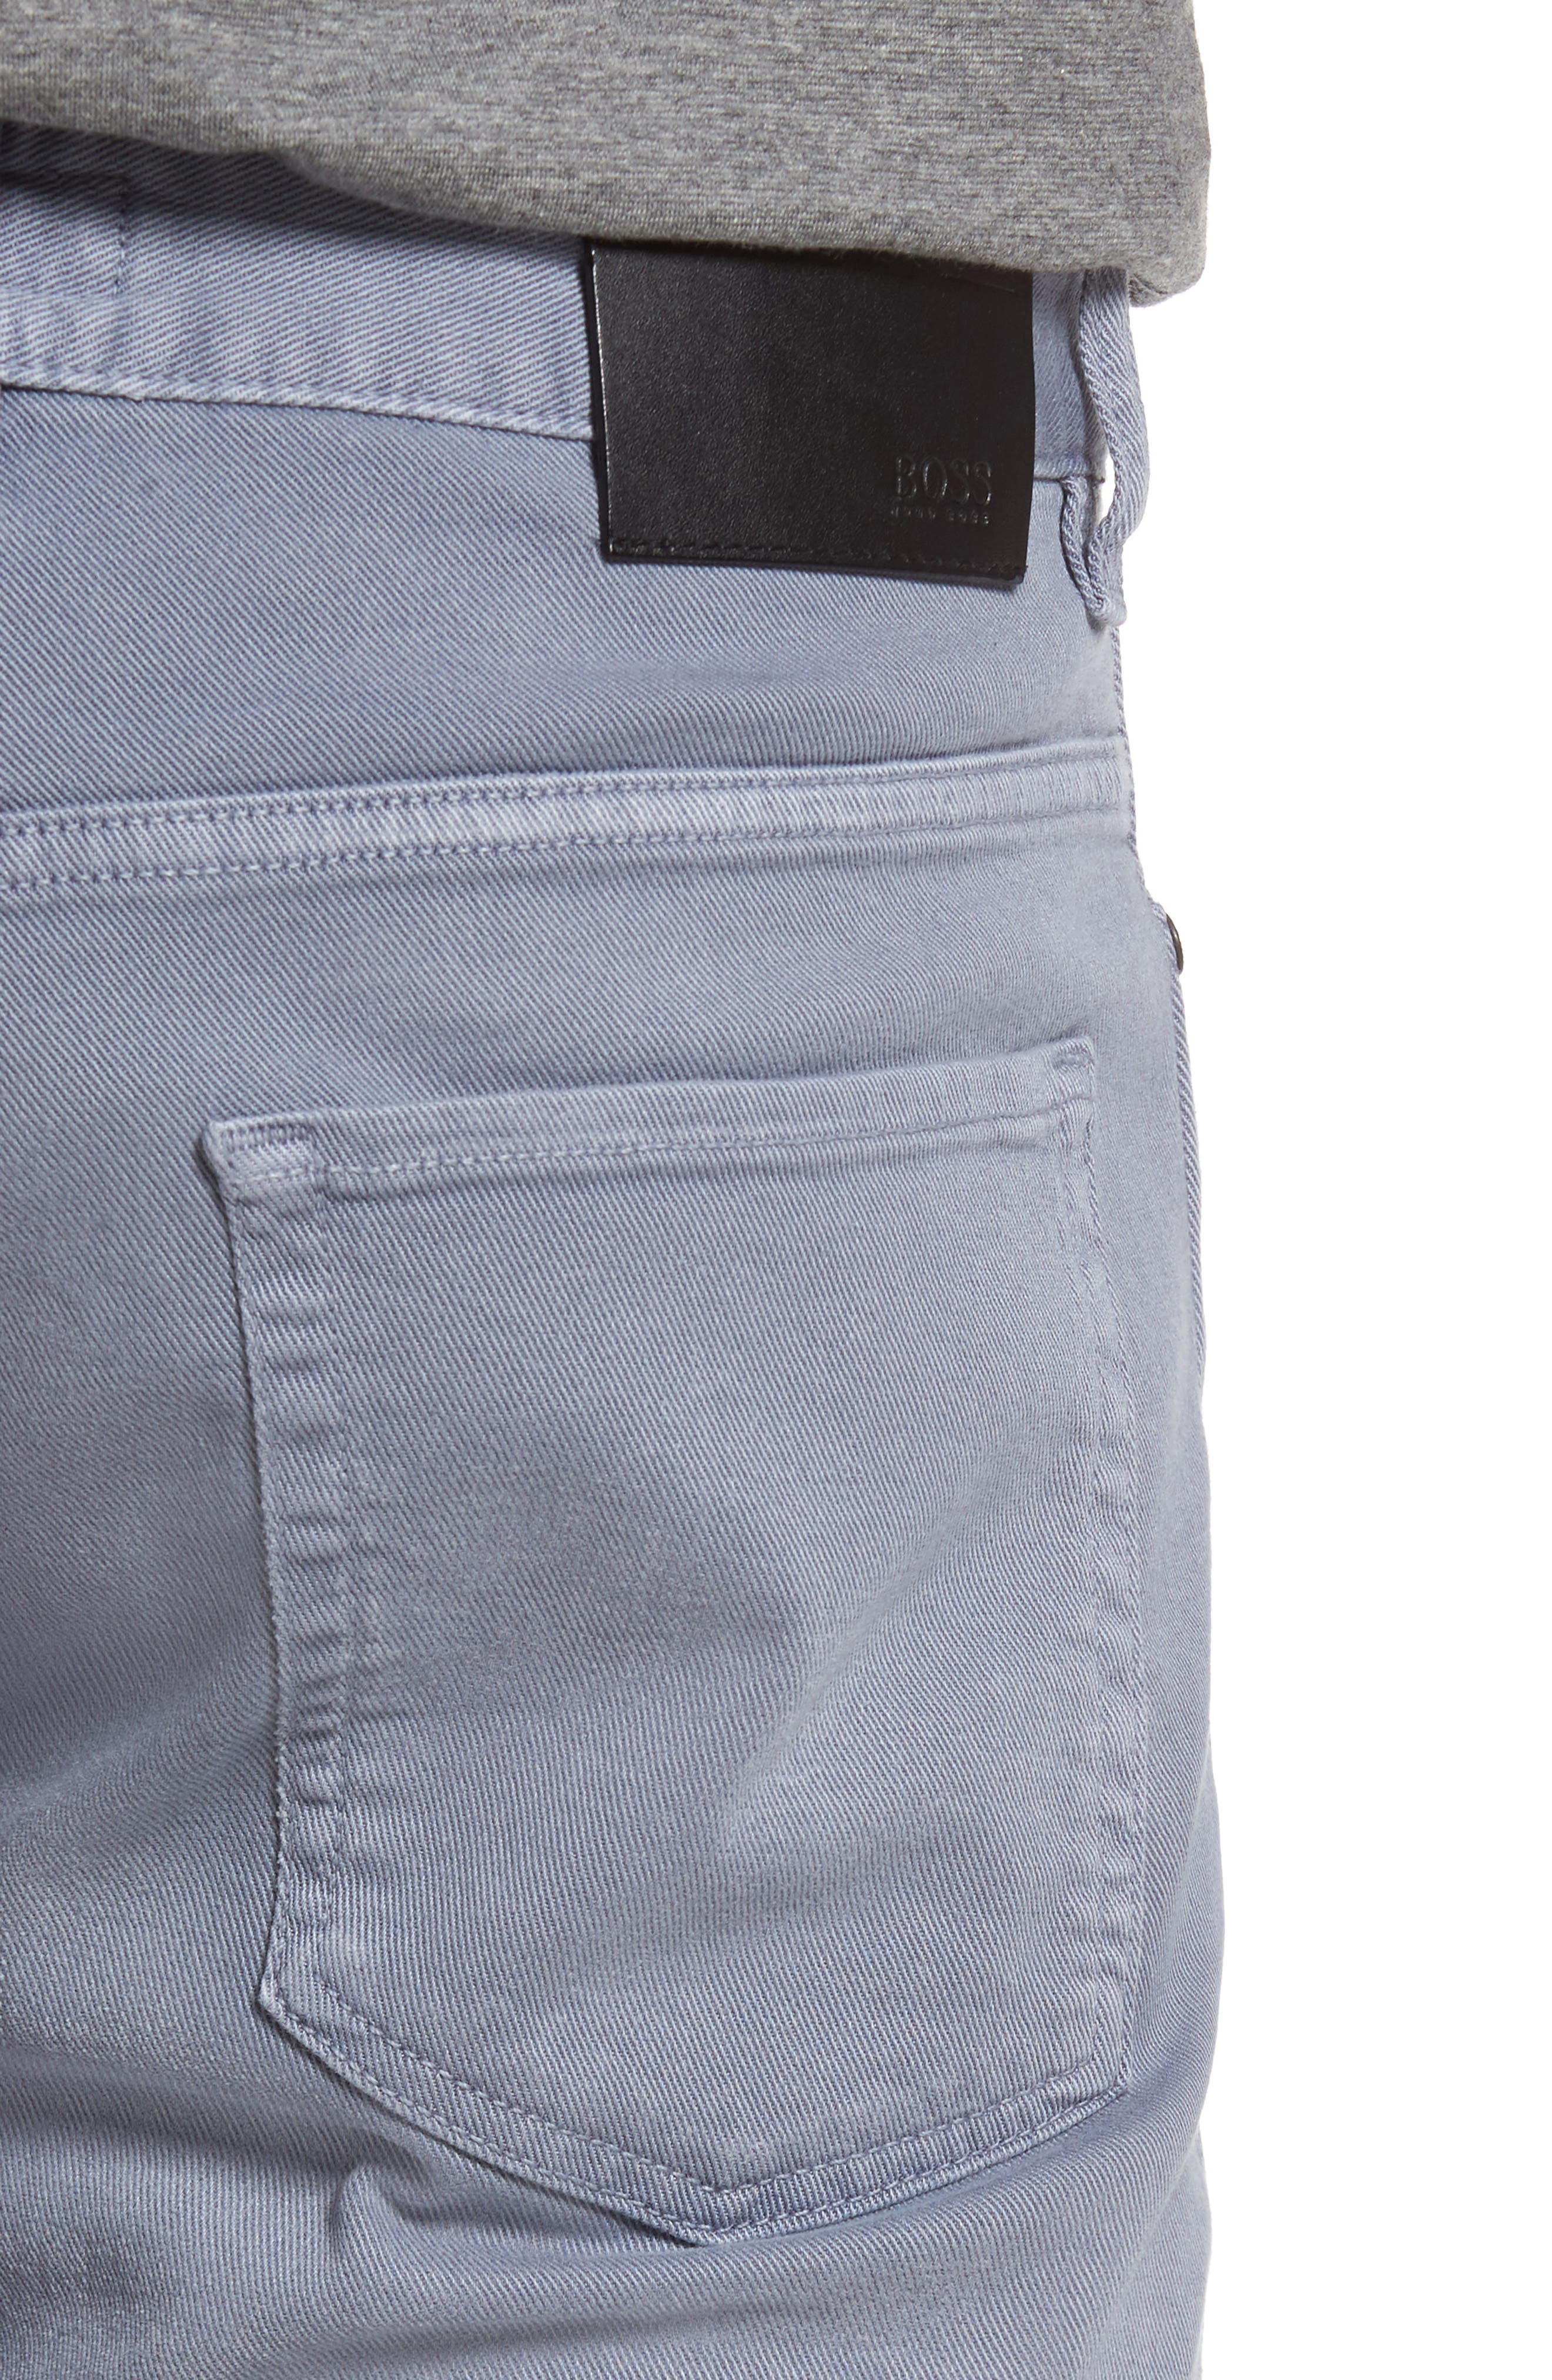 Delaware Slim Fit Jeans,                             Alternate thumbnail 4, color,                             Blue